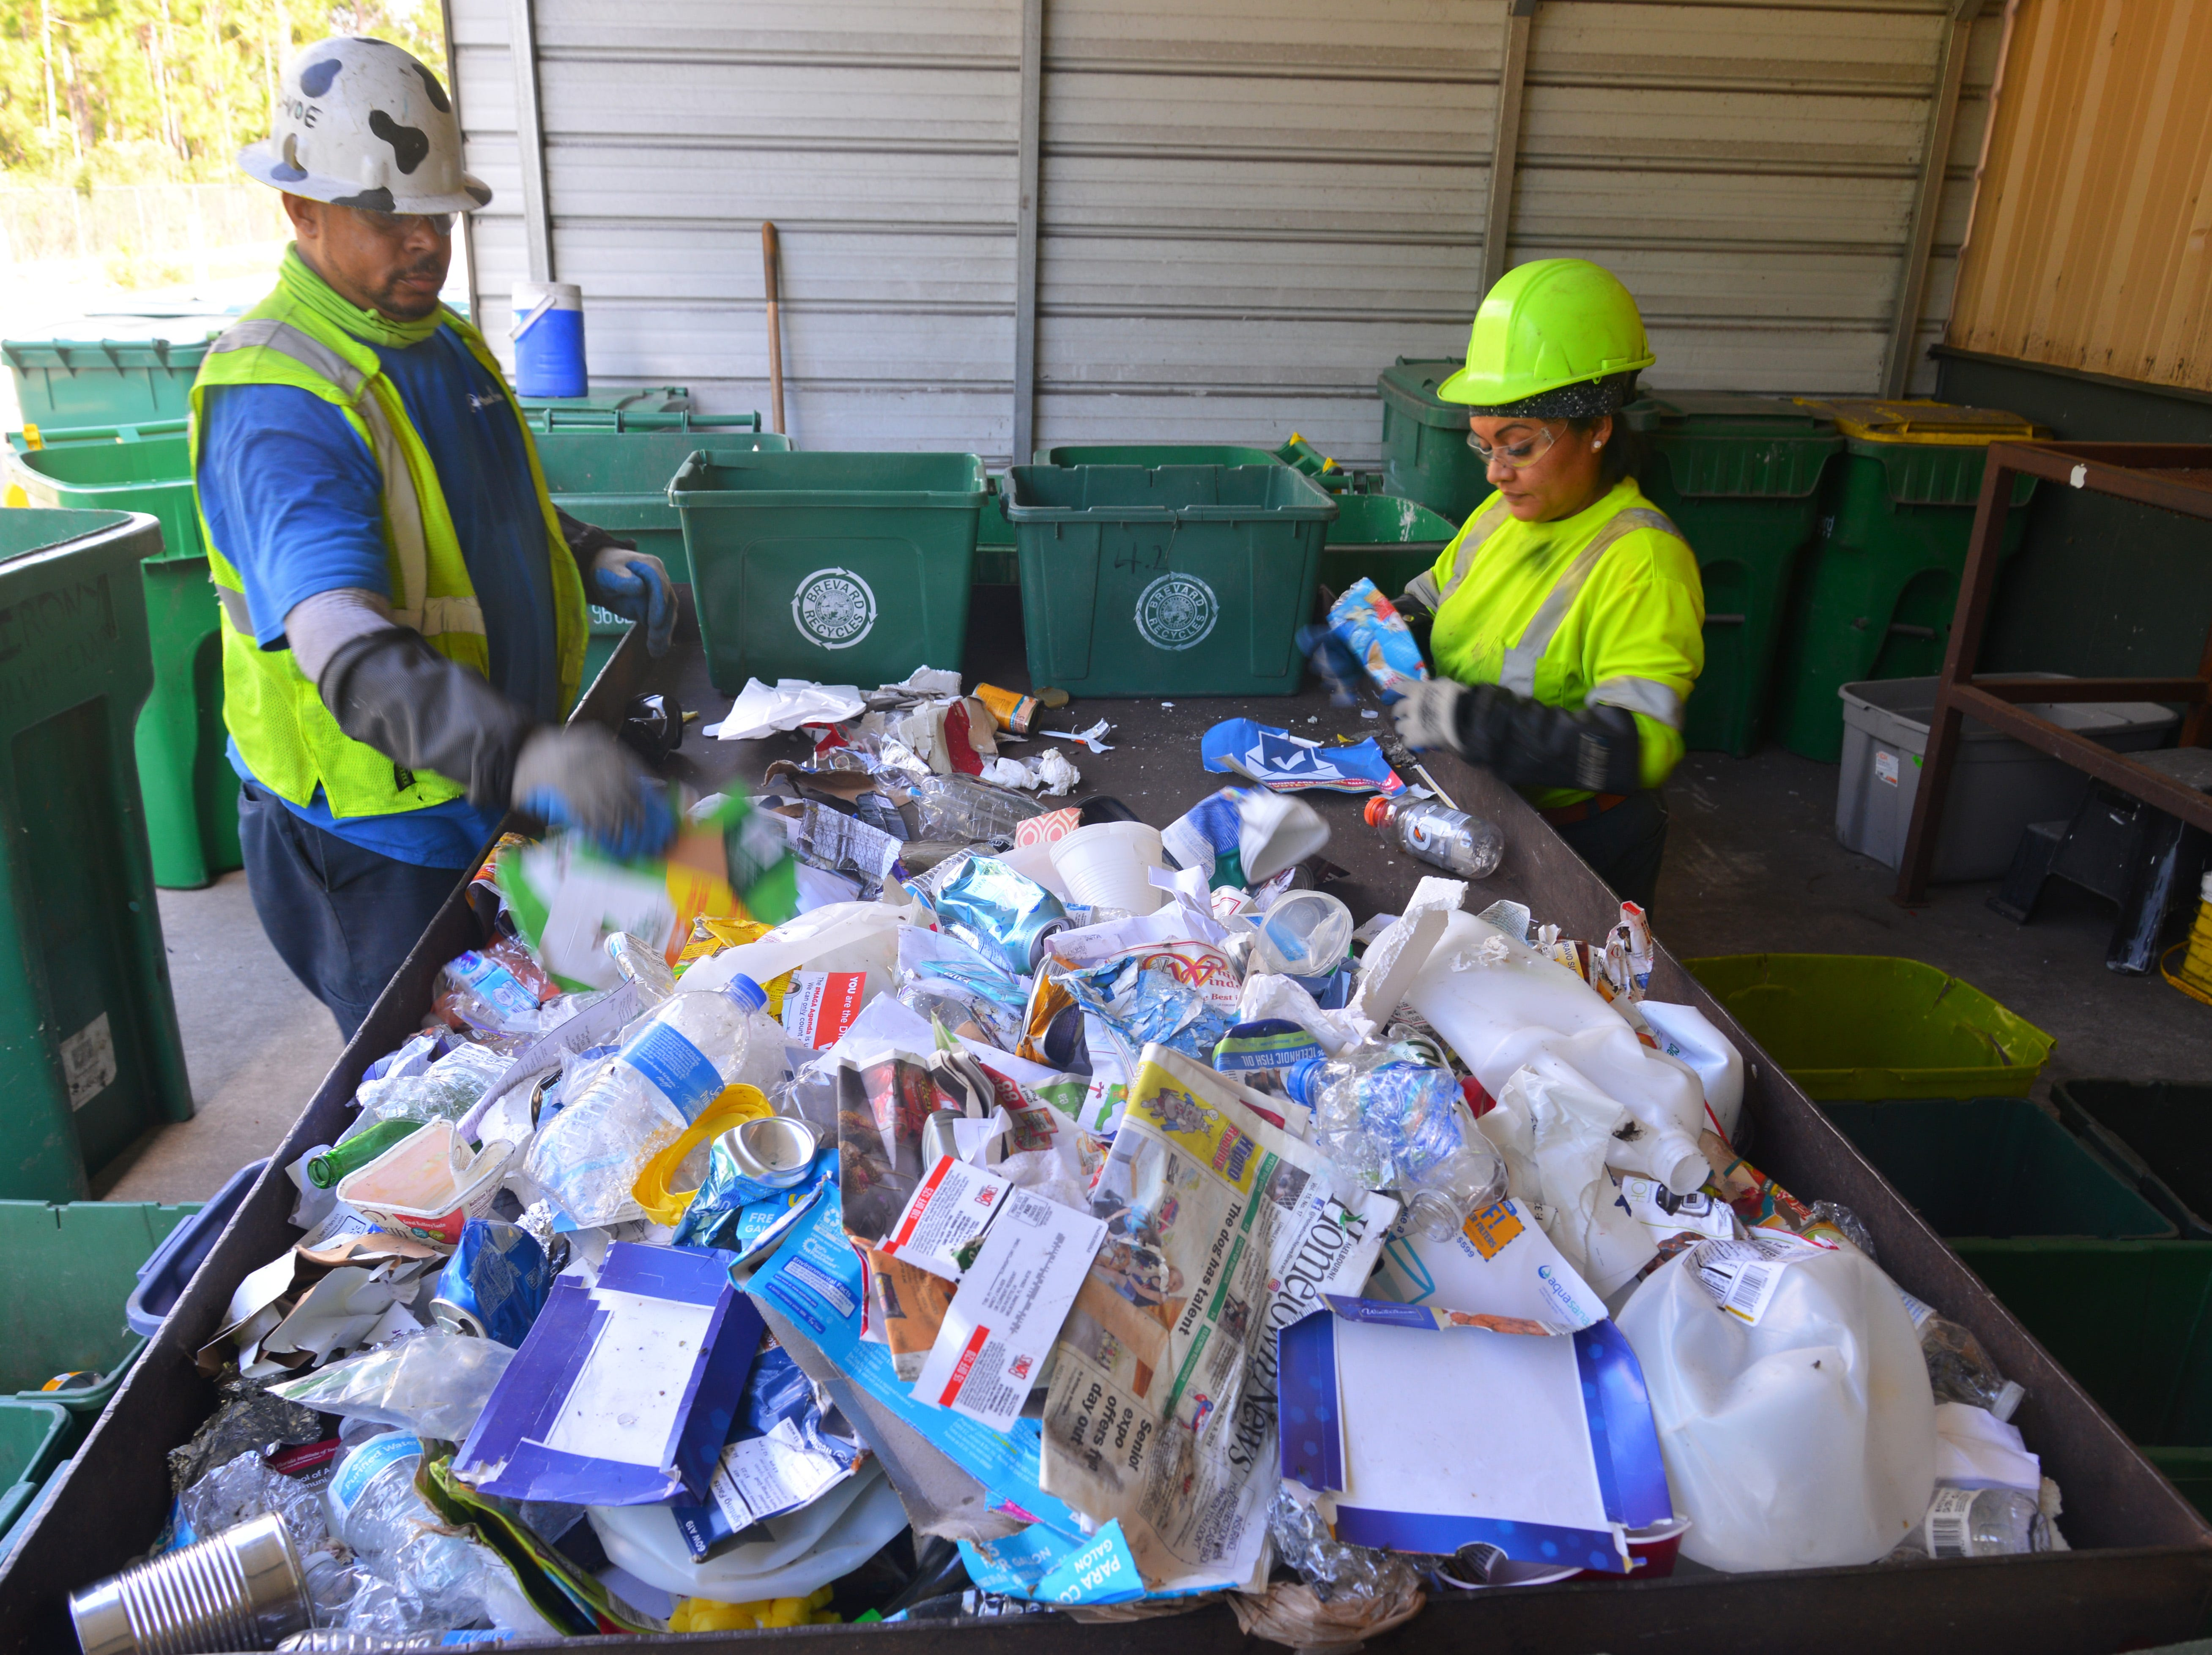 America Recycles Day plea: Keep plastic bags, garbage out of Brevard recycling bins